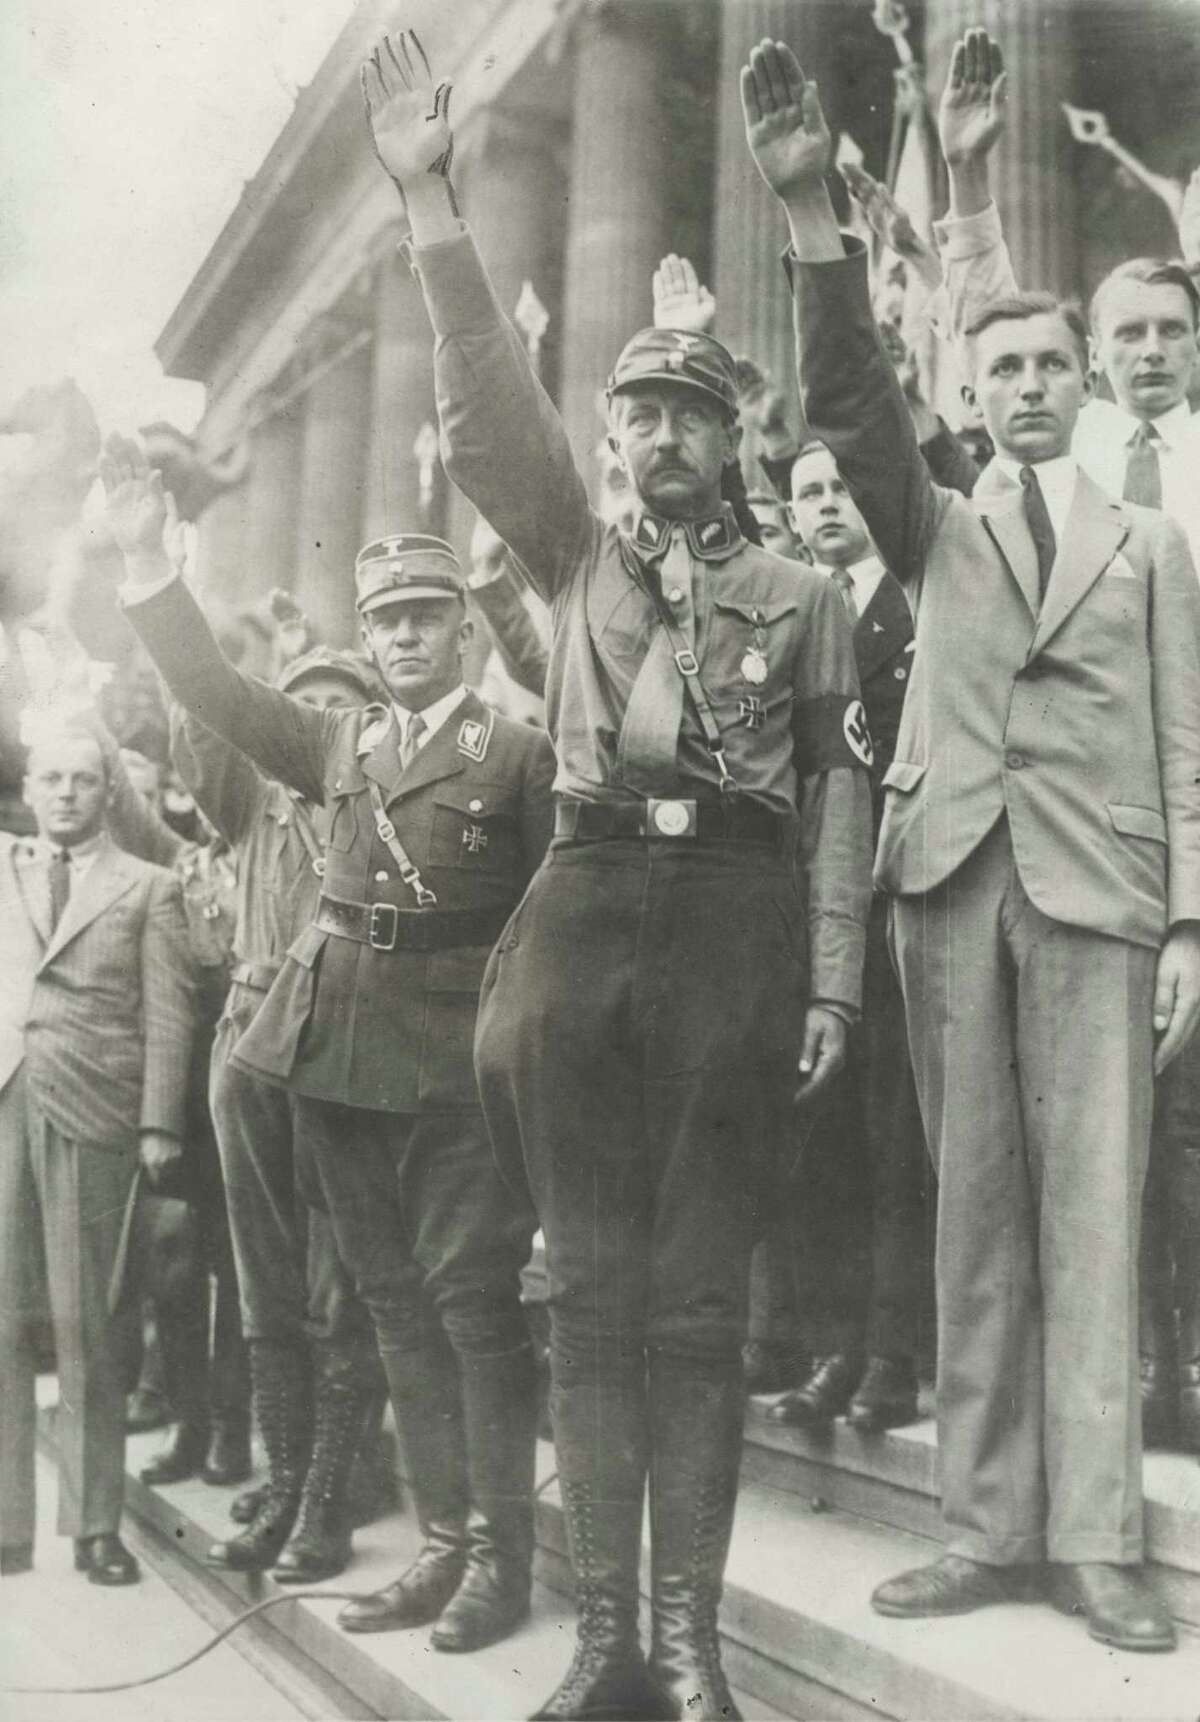 Original caption reads: Berlin, Germany: Prince August Wilhelm, son of the former Kaiser, gives the fascist salute as he reviews National Socialist drill units and students in a huge demonstration against the Versailles Peace Treaty on the anniversary of the signing of the pact. Photo was taken in 1932.